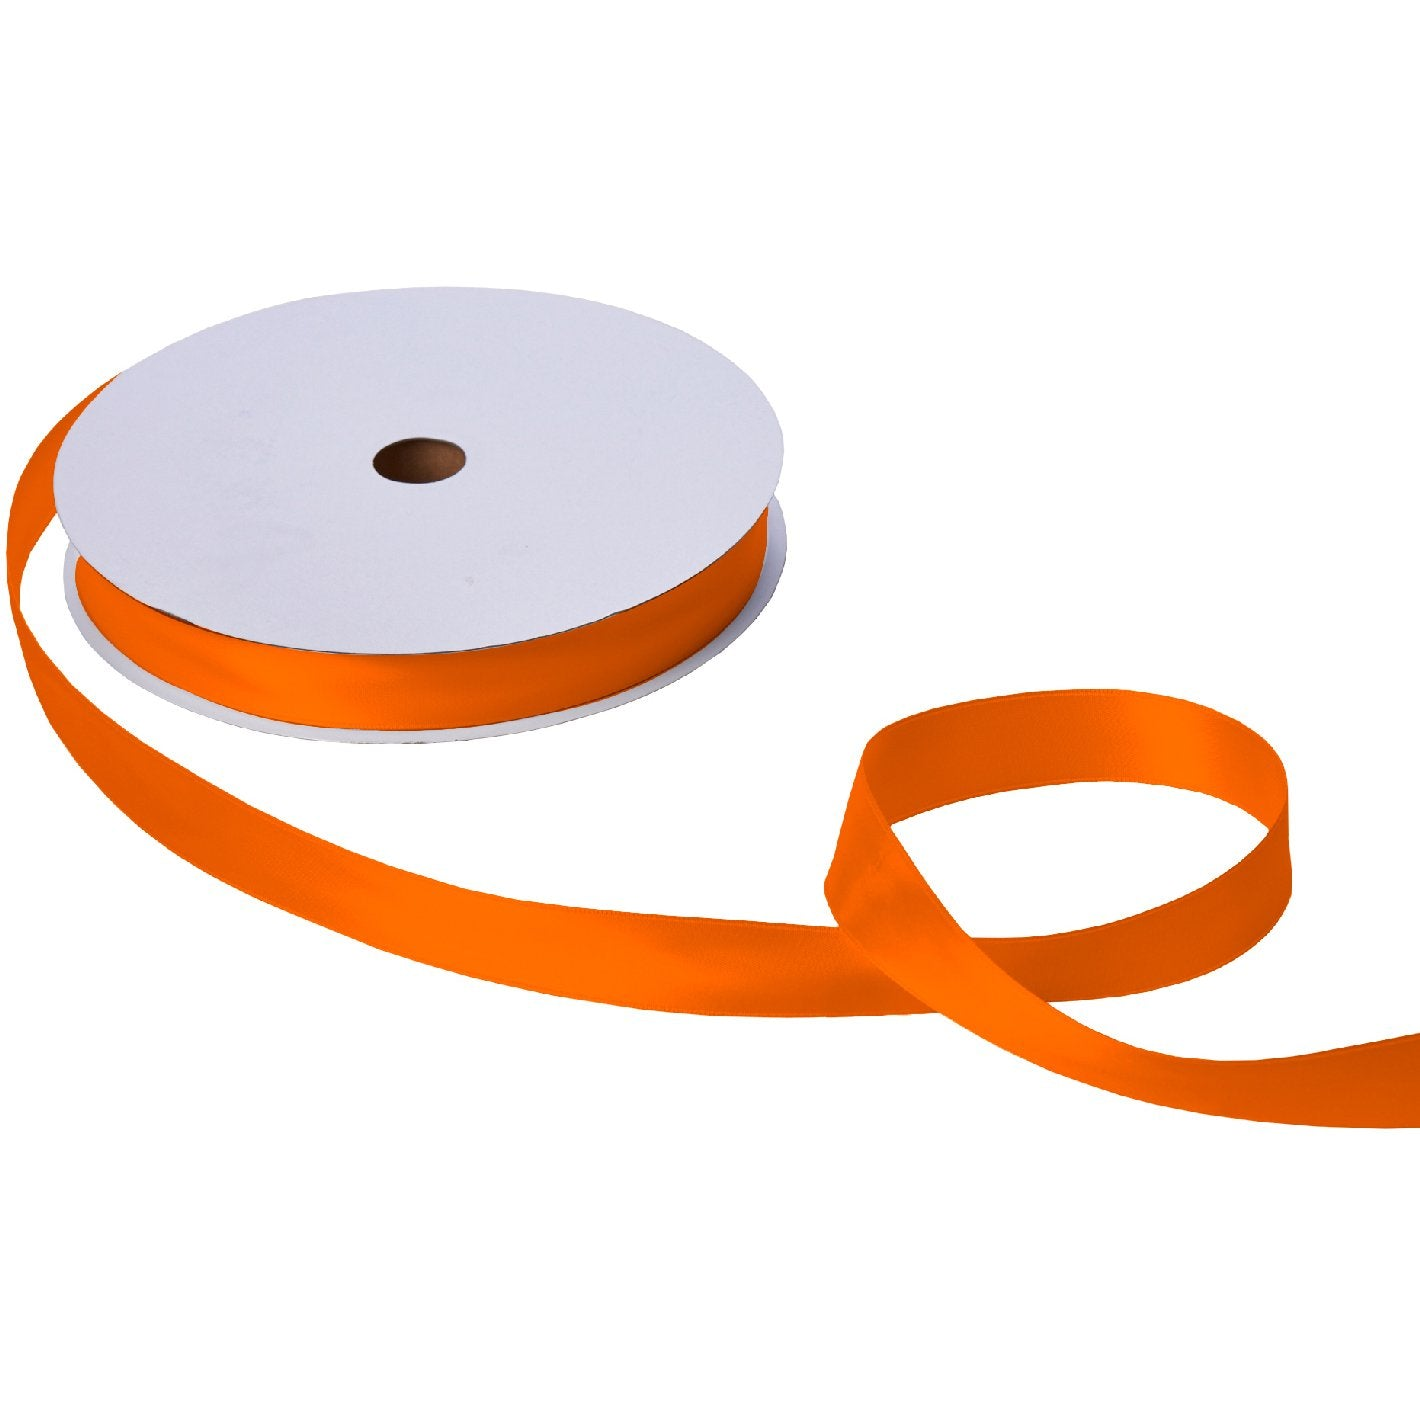 "Jillson & Roberts Double-Faced Satin Ribbon, 1"" Wide x 100 Yards, Orange"